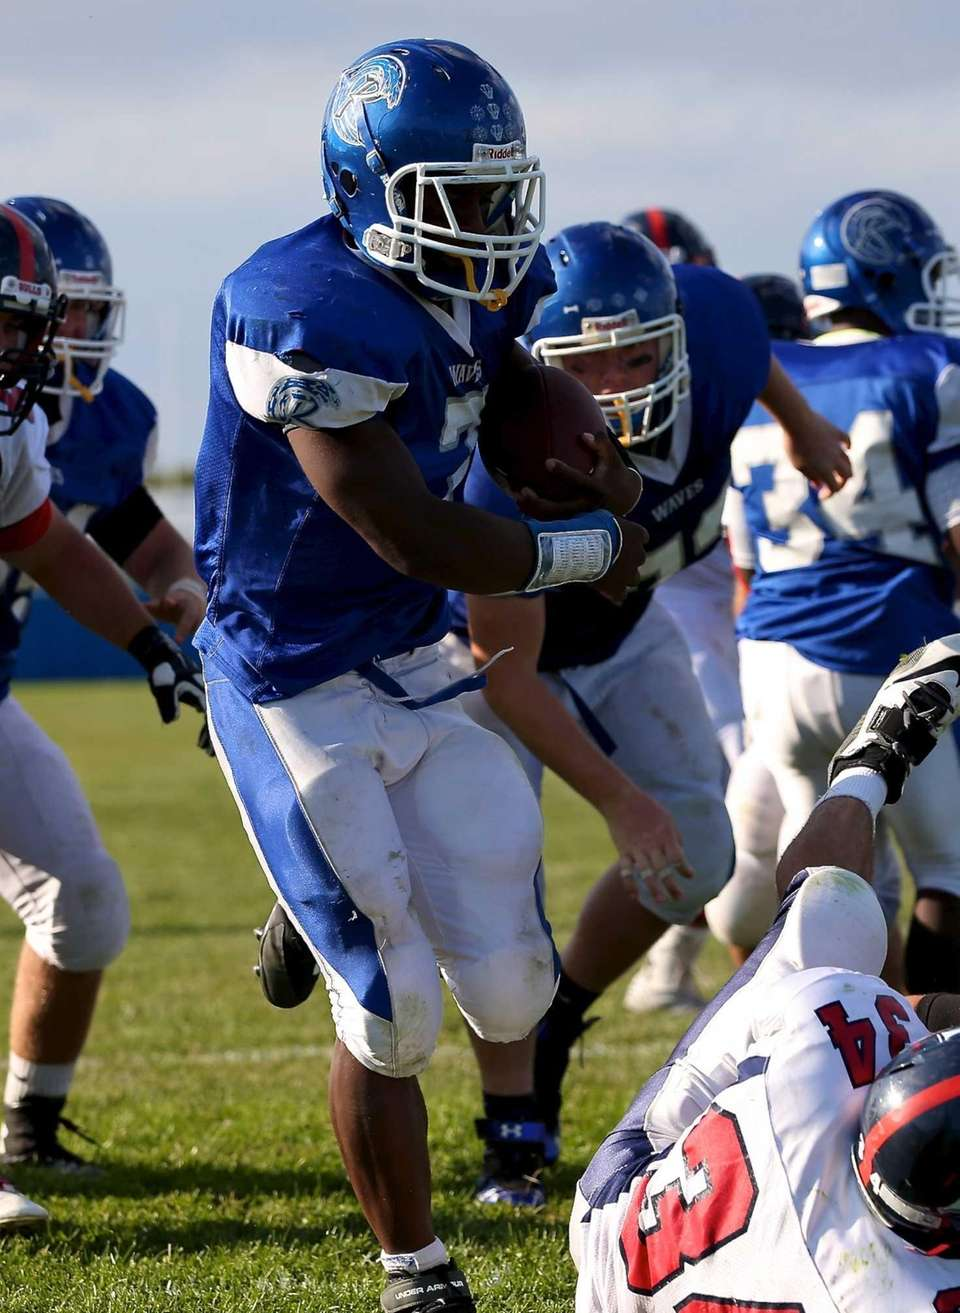 Riverhead RB Ryun Moore sneaks in for the